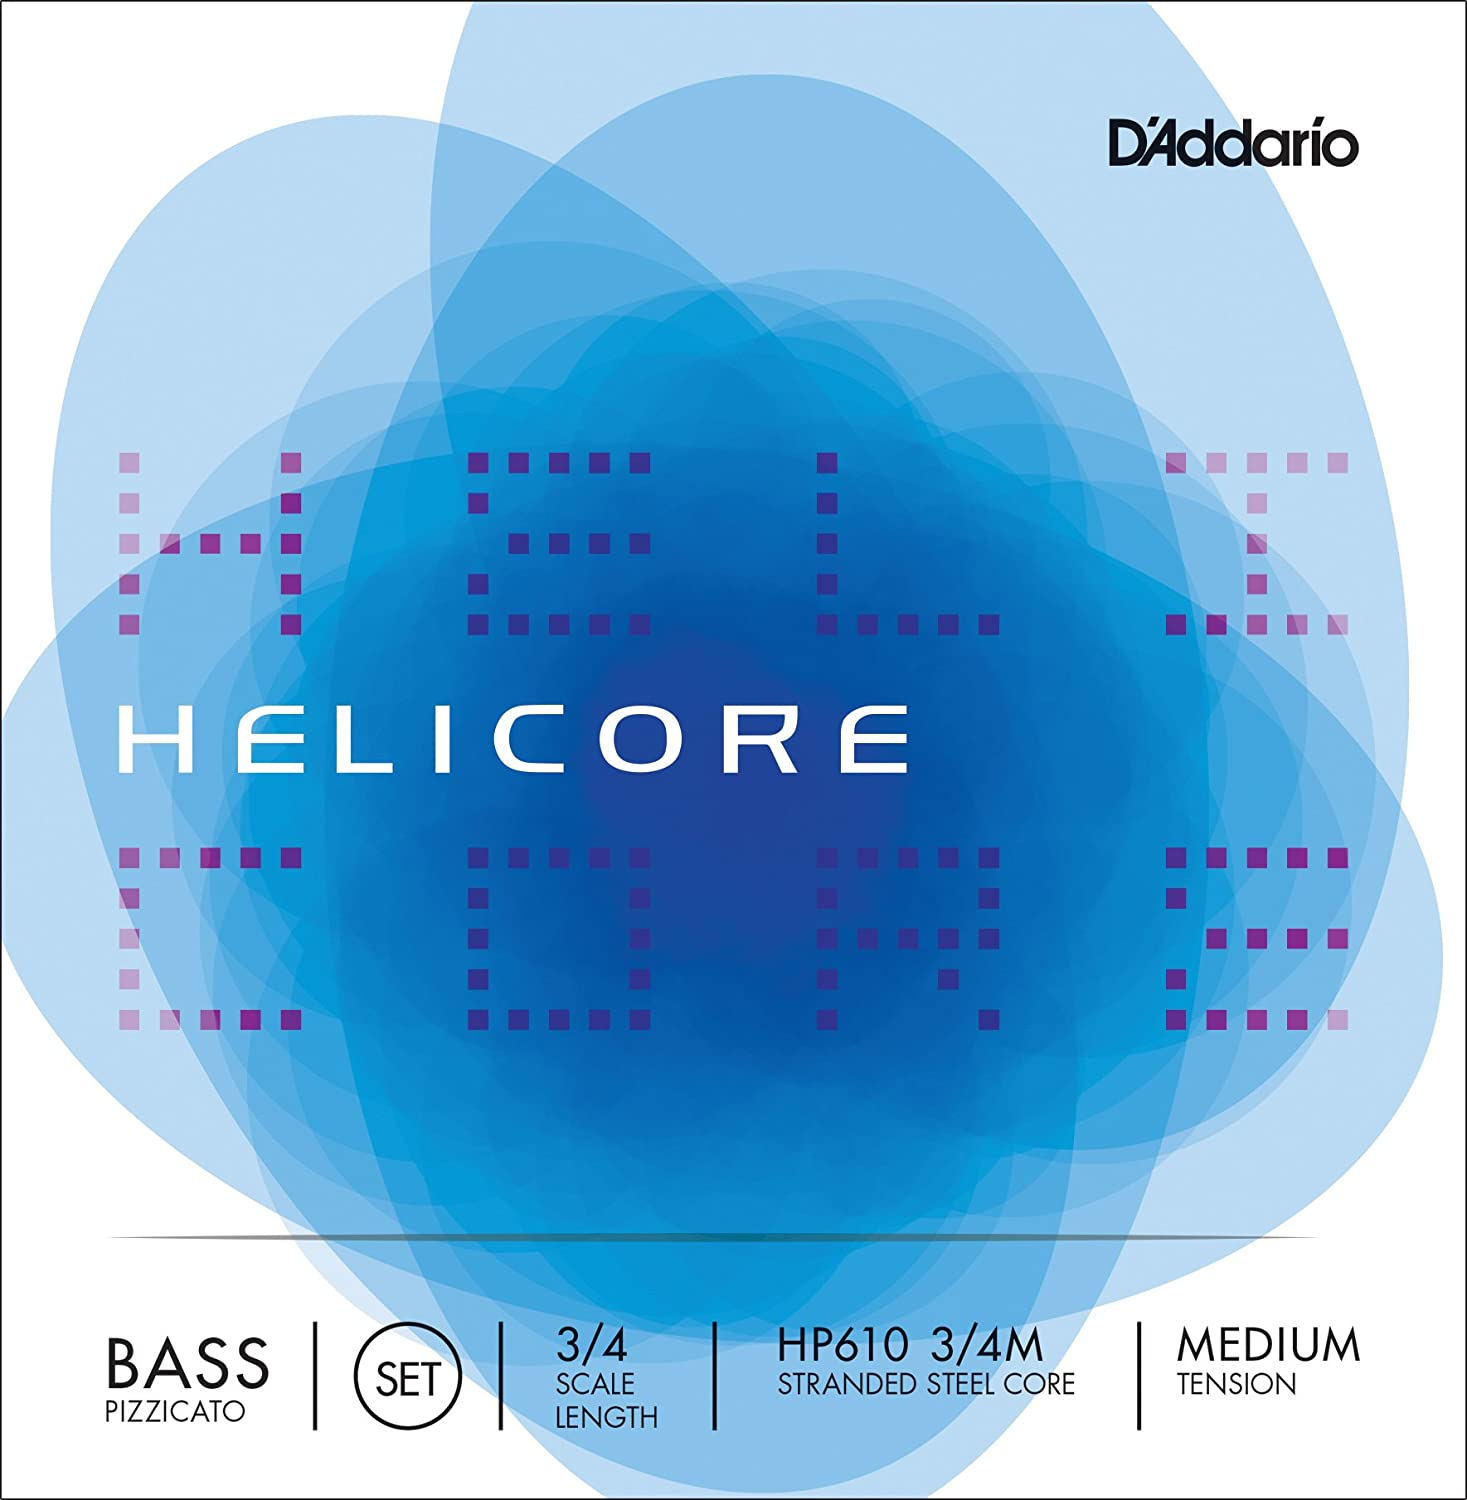 D'Addario Helicore Pizzicato Bass String Set, 3/4 Scale, Light Tension - HP610-3/4L D'Addario HP610 3/4L